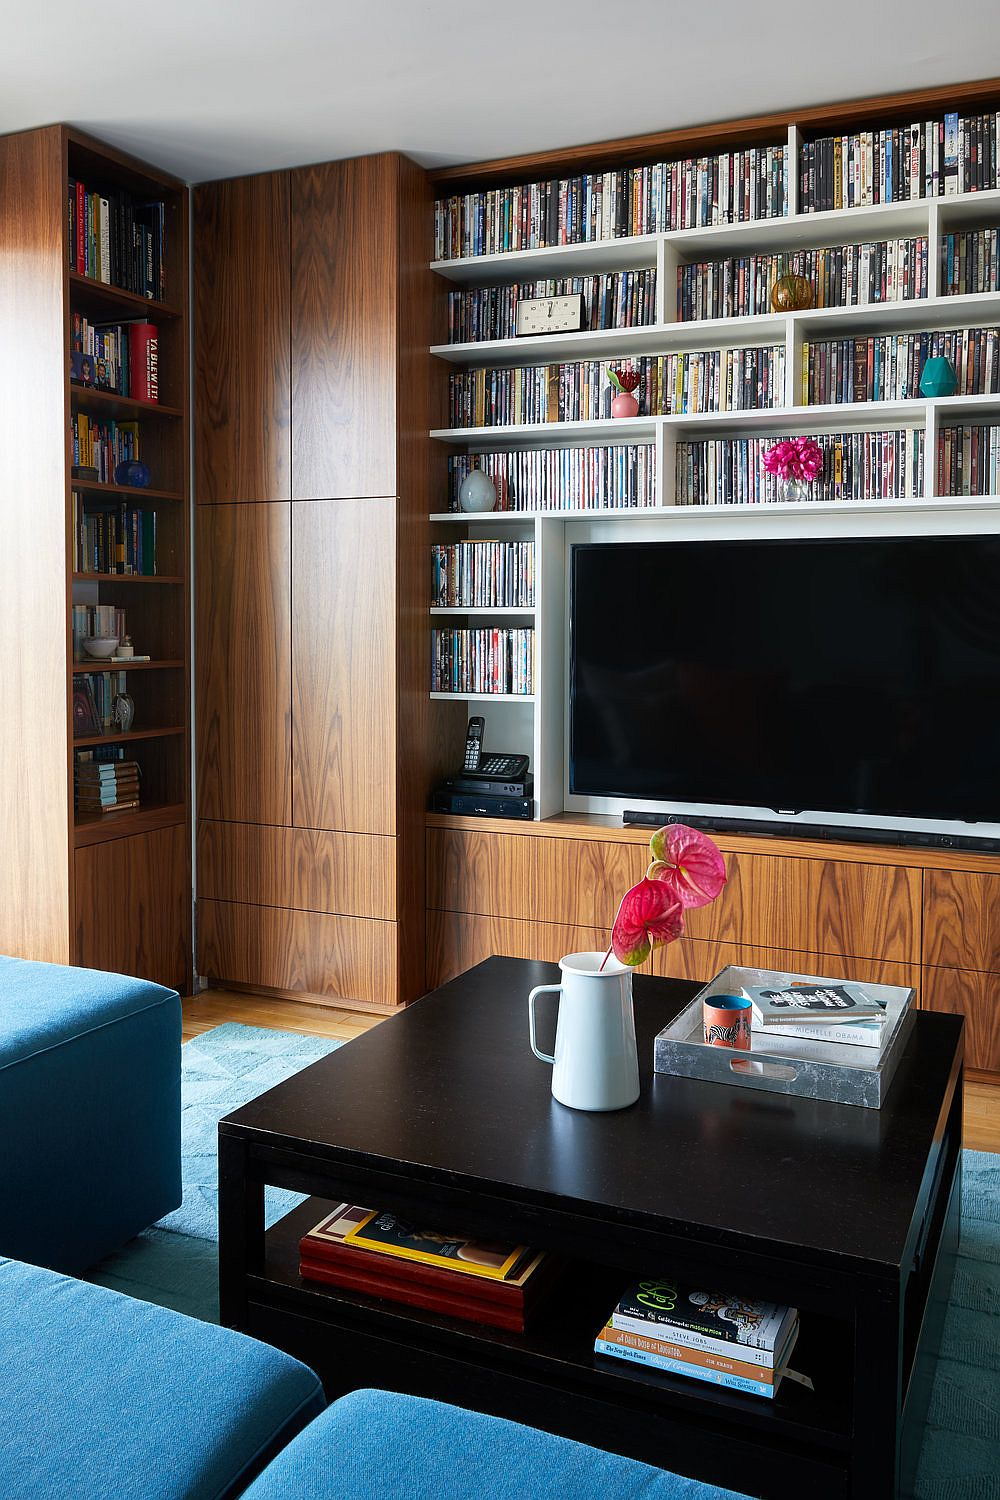 Awesome book and DVD collection finds perfect space in the large living room booshelf